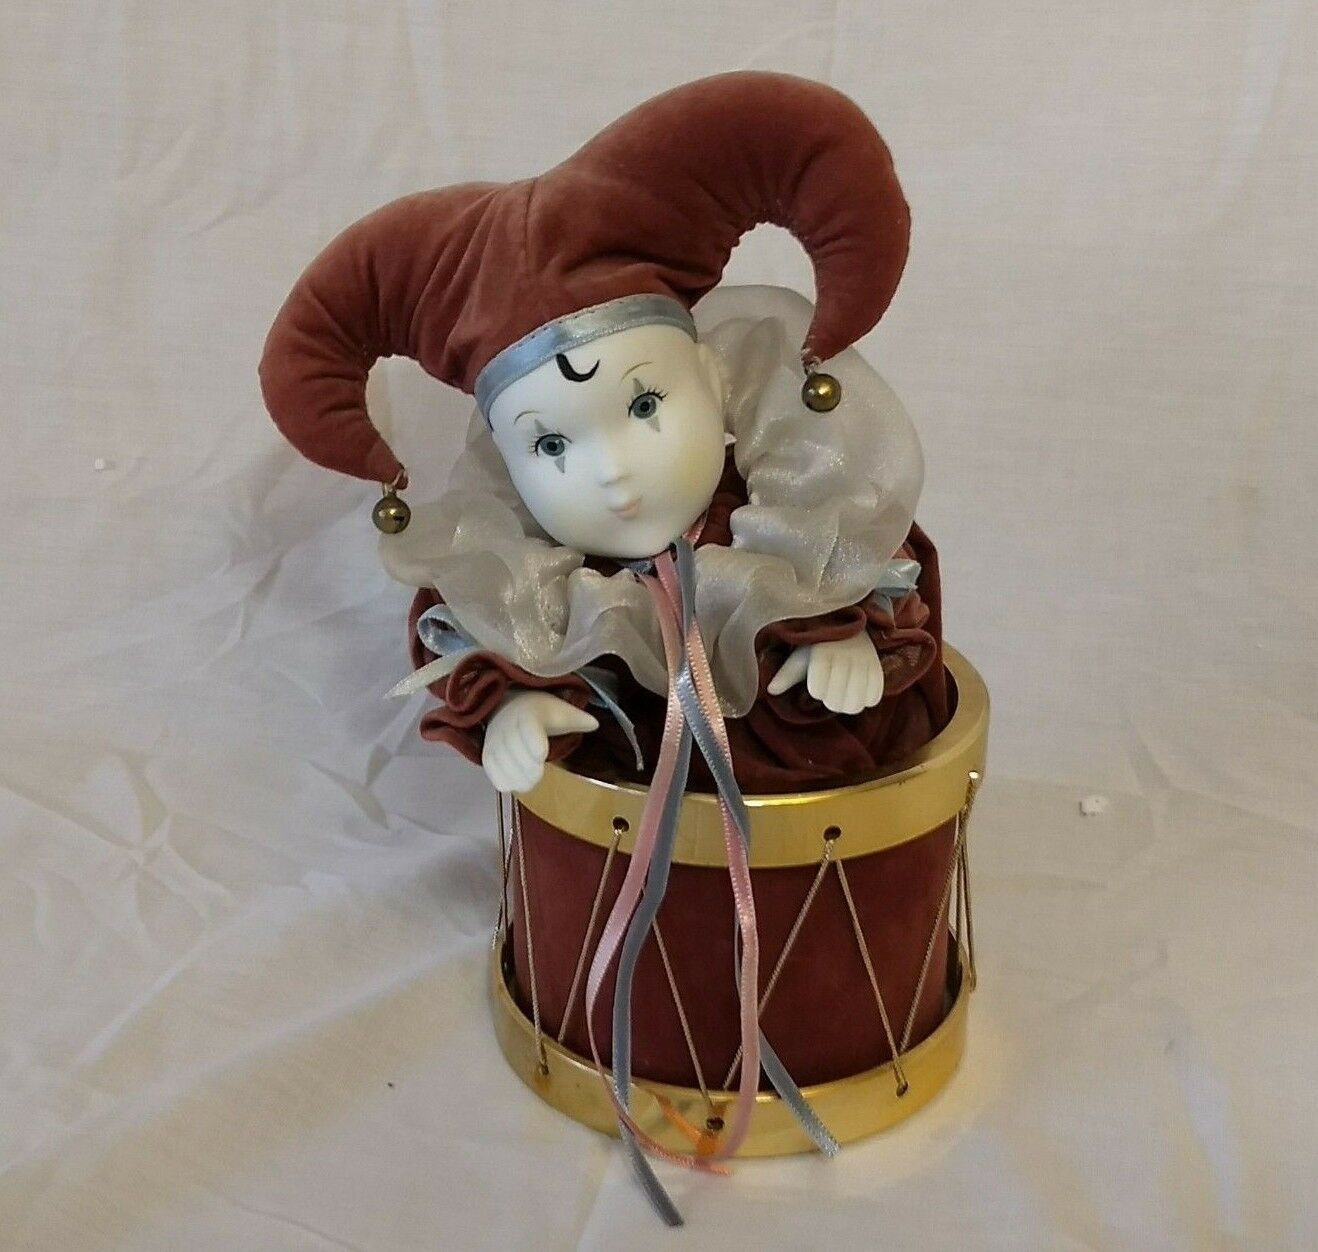 The San Francisco Music Box Company 1989 Harlequin Clown Jester Drum Music Box